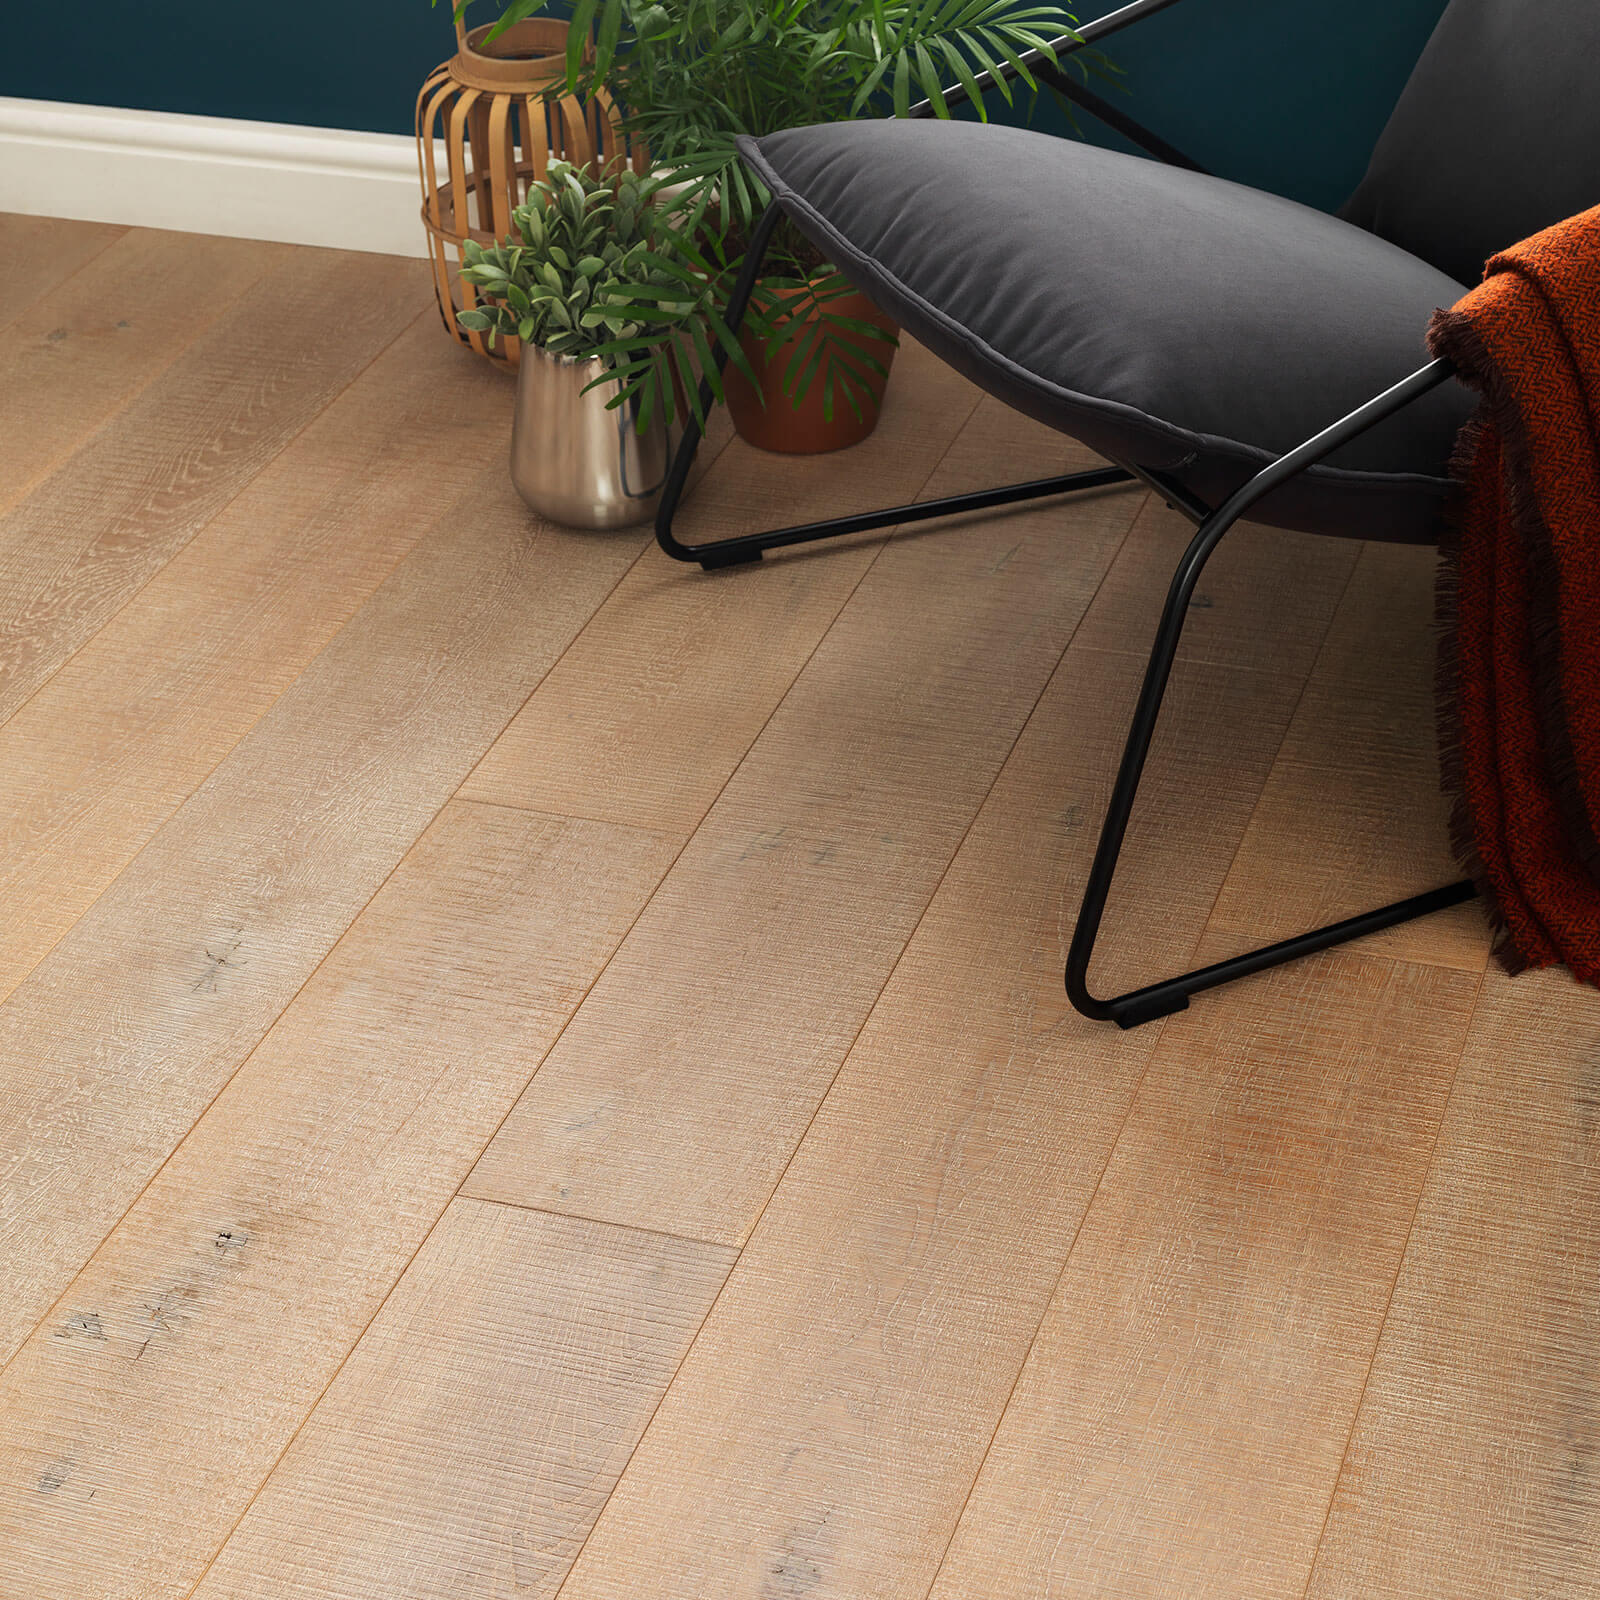 Woodpecker Chepstow Sawn Grey Oak Hardwax Oiled Engineered Wood Flooring 189mm 65-SOG-001